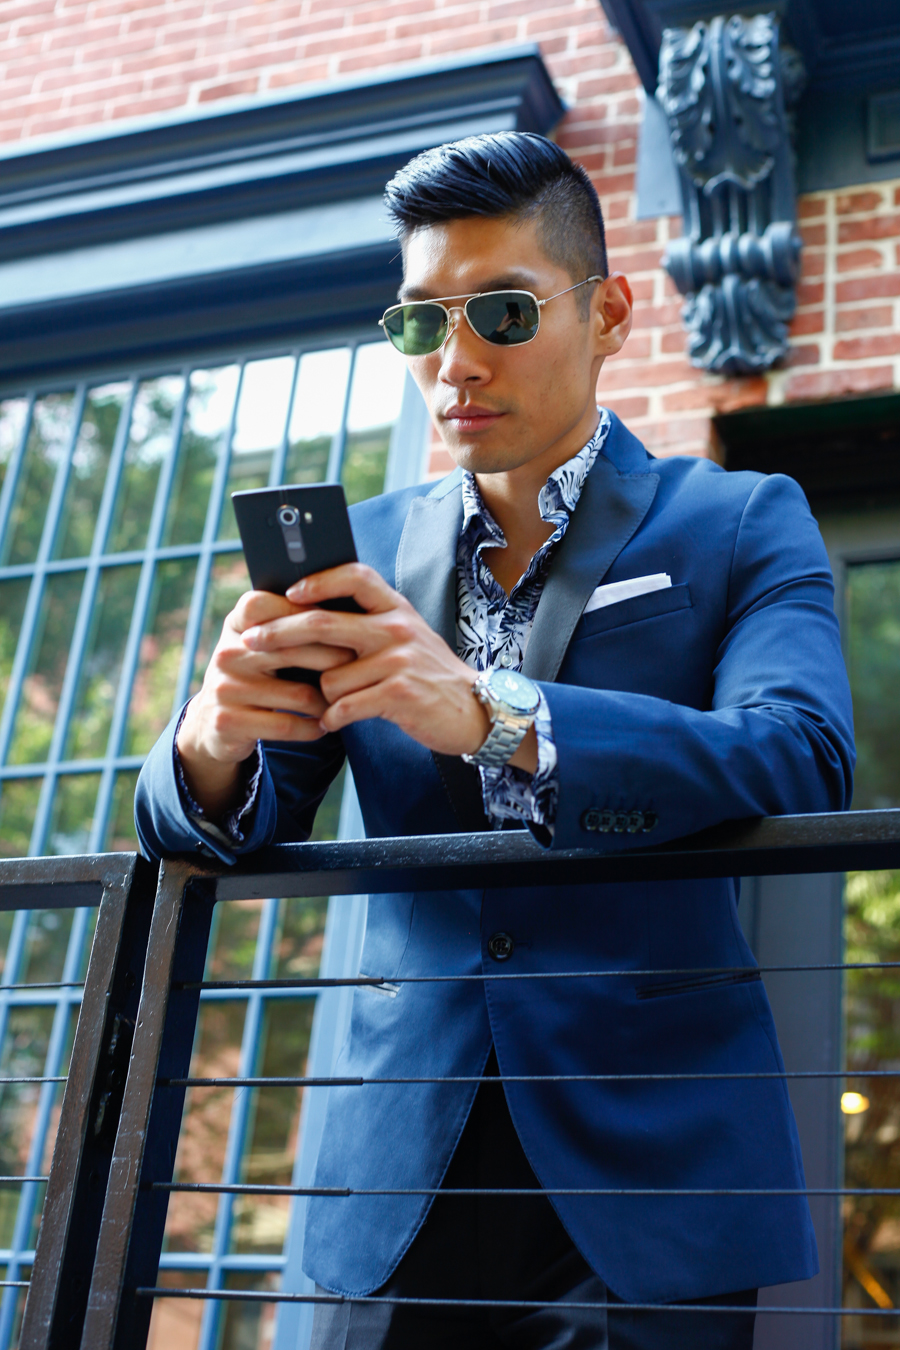 Levitate Style Tux & Floral NYFWM | Express Tuxedo paired with Floral Shirt, GQ LG G4, Fossil Chronograph Watch